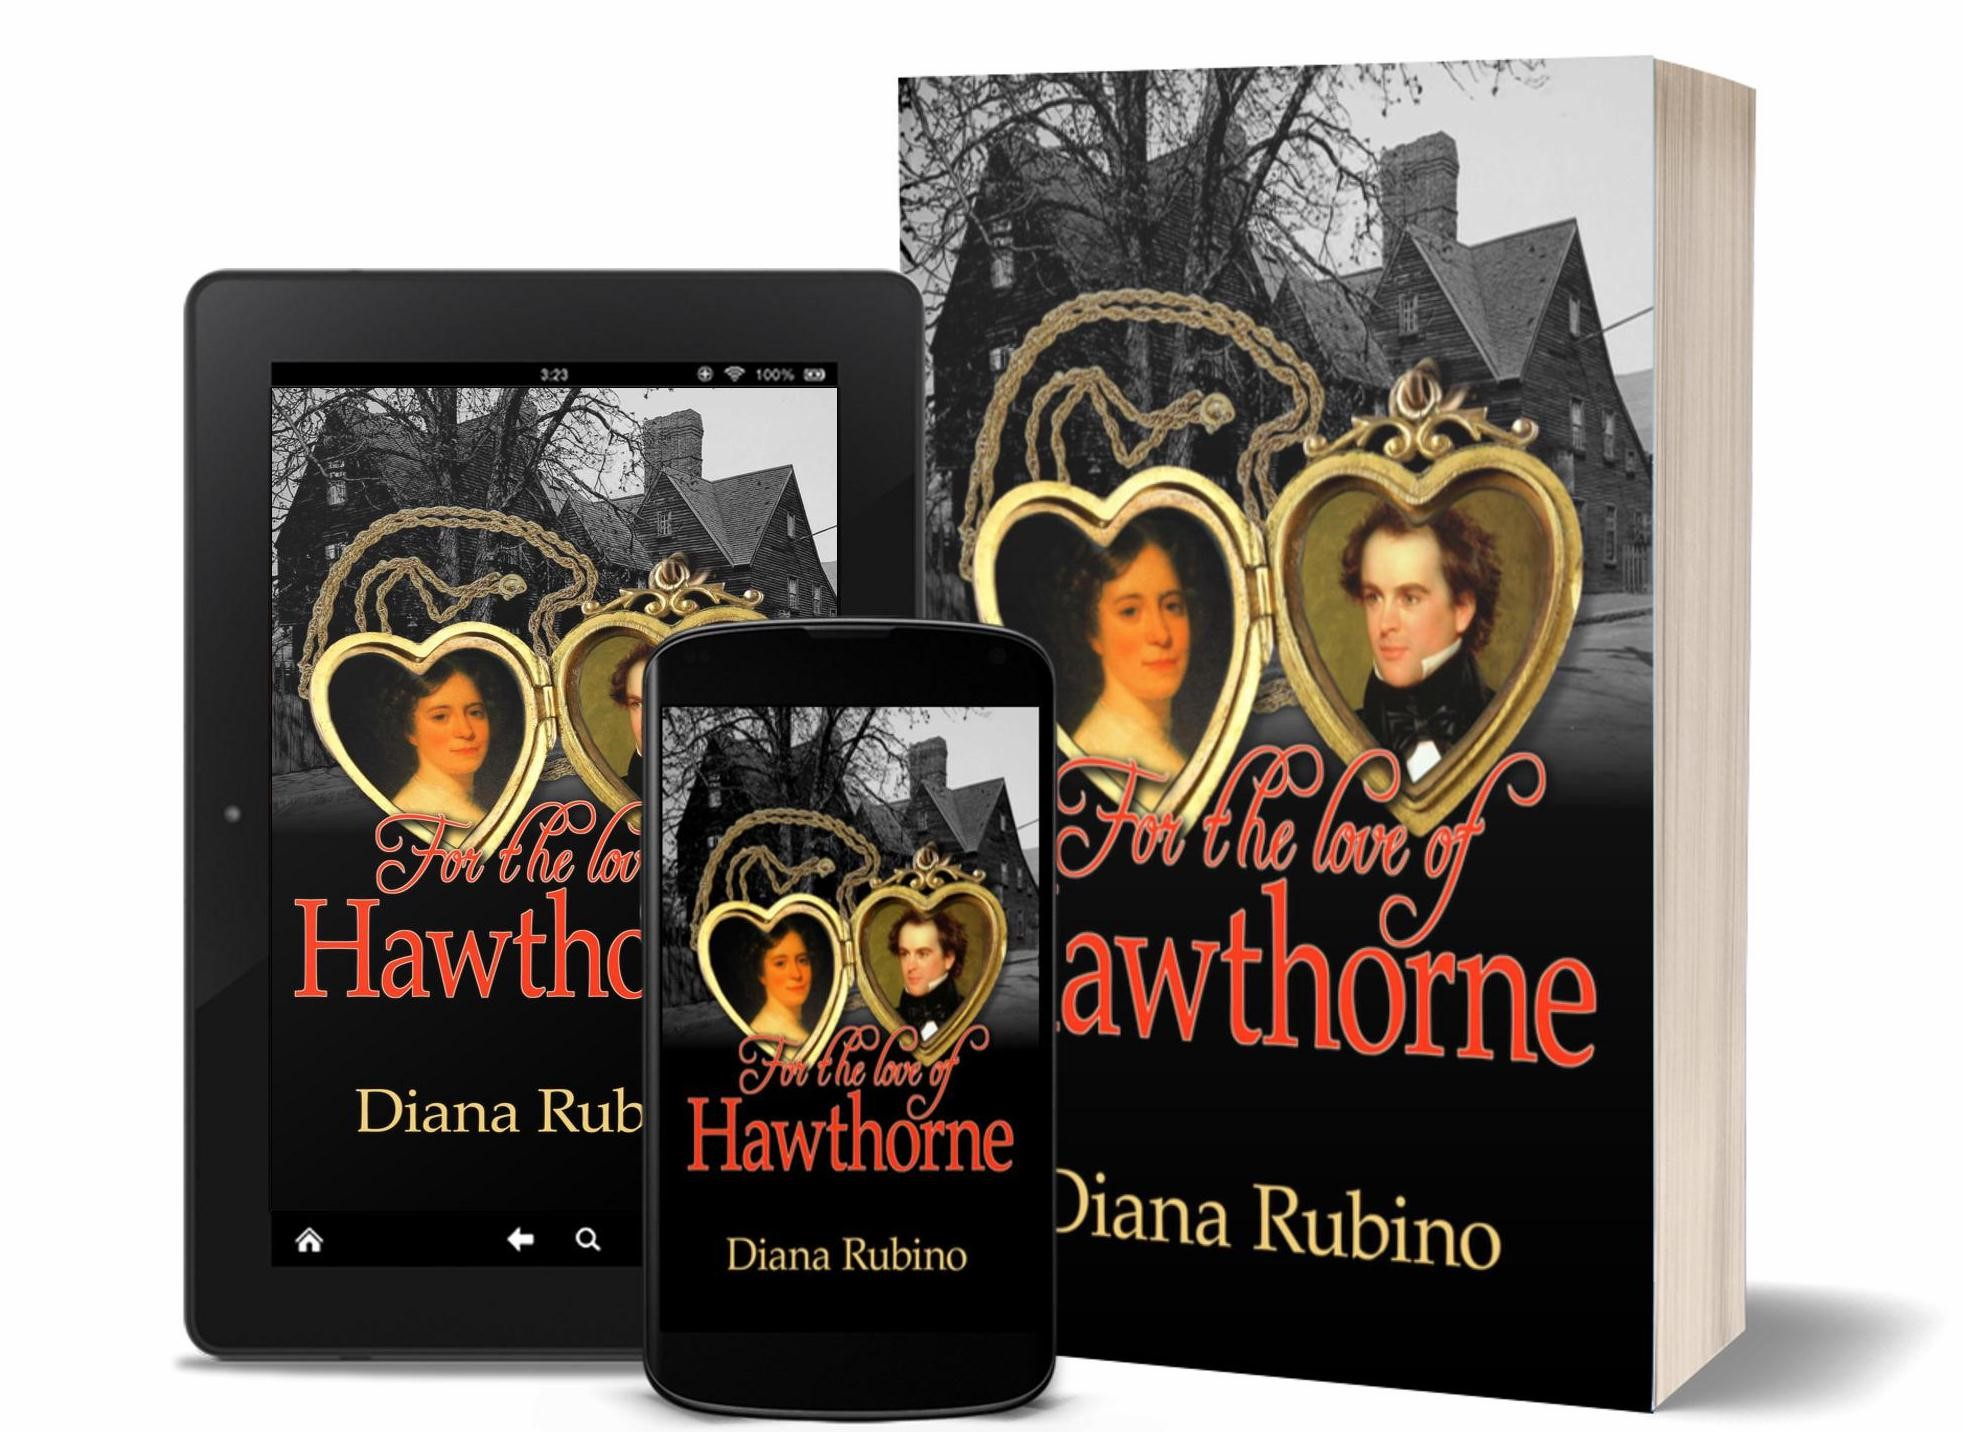 For the Love of Hawthorne - Nathaniel Hawthorne's courtship of Sophia Peabody lasted over three years because he insisted on keeping it secret. He had his reasons, none of which Sophia agreed with. But she knew they were destined for each other and he was worth the wait. When they married in 1842